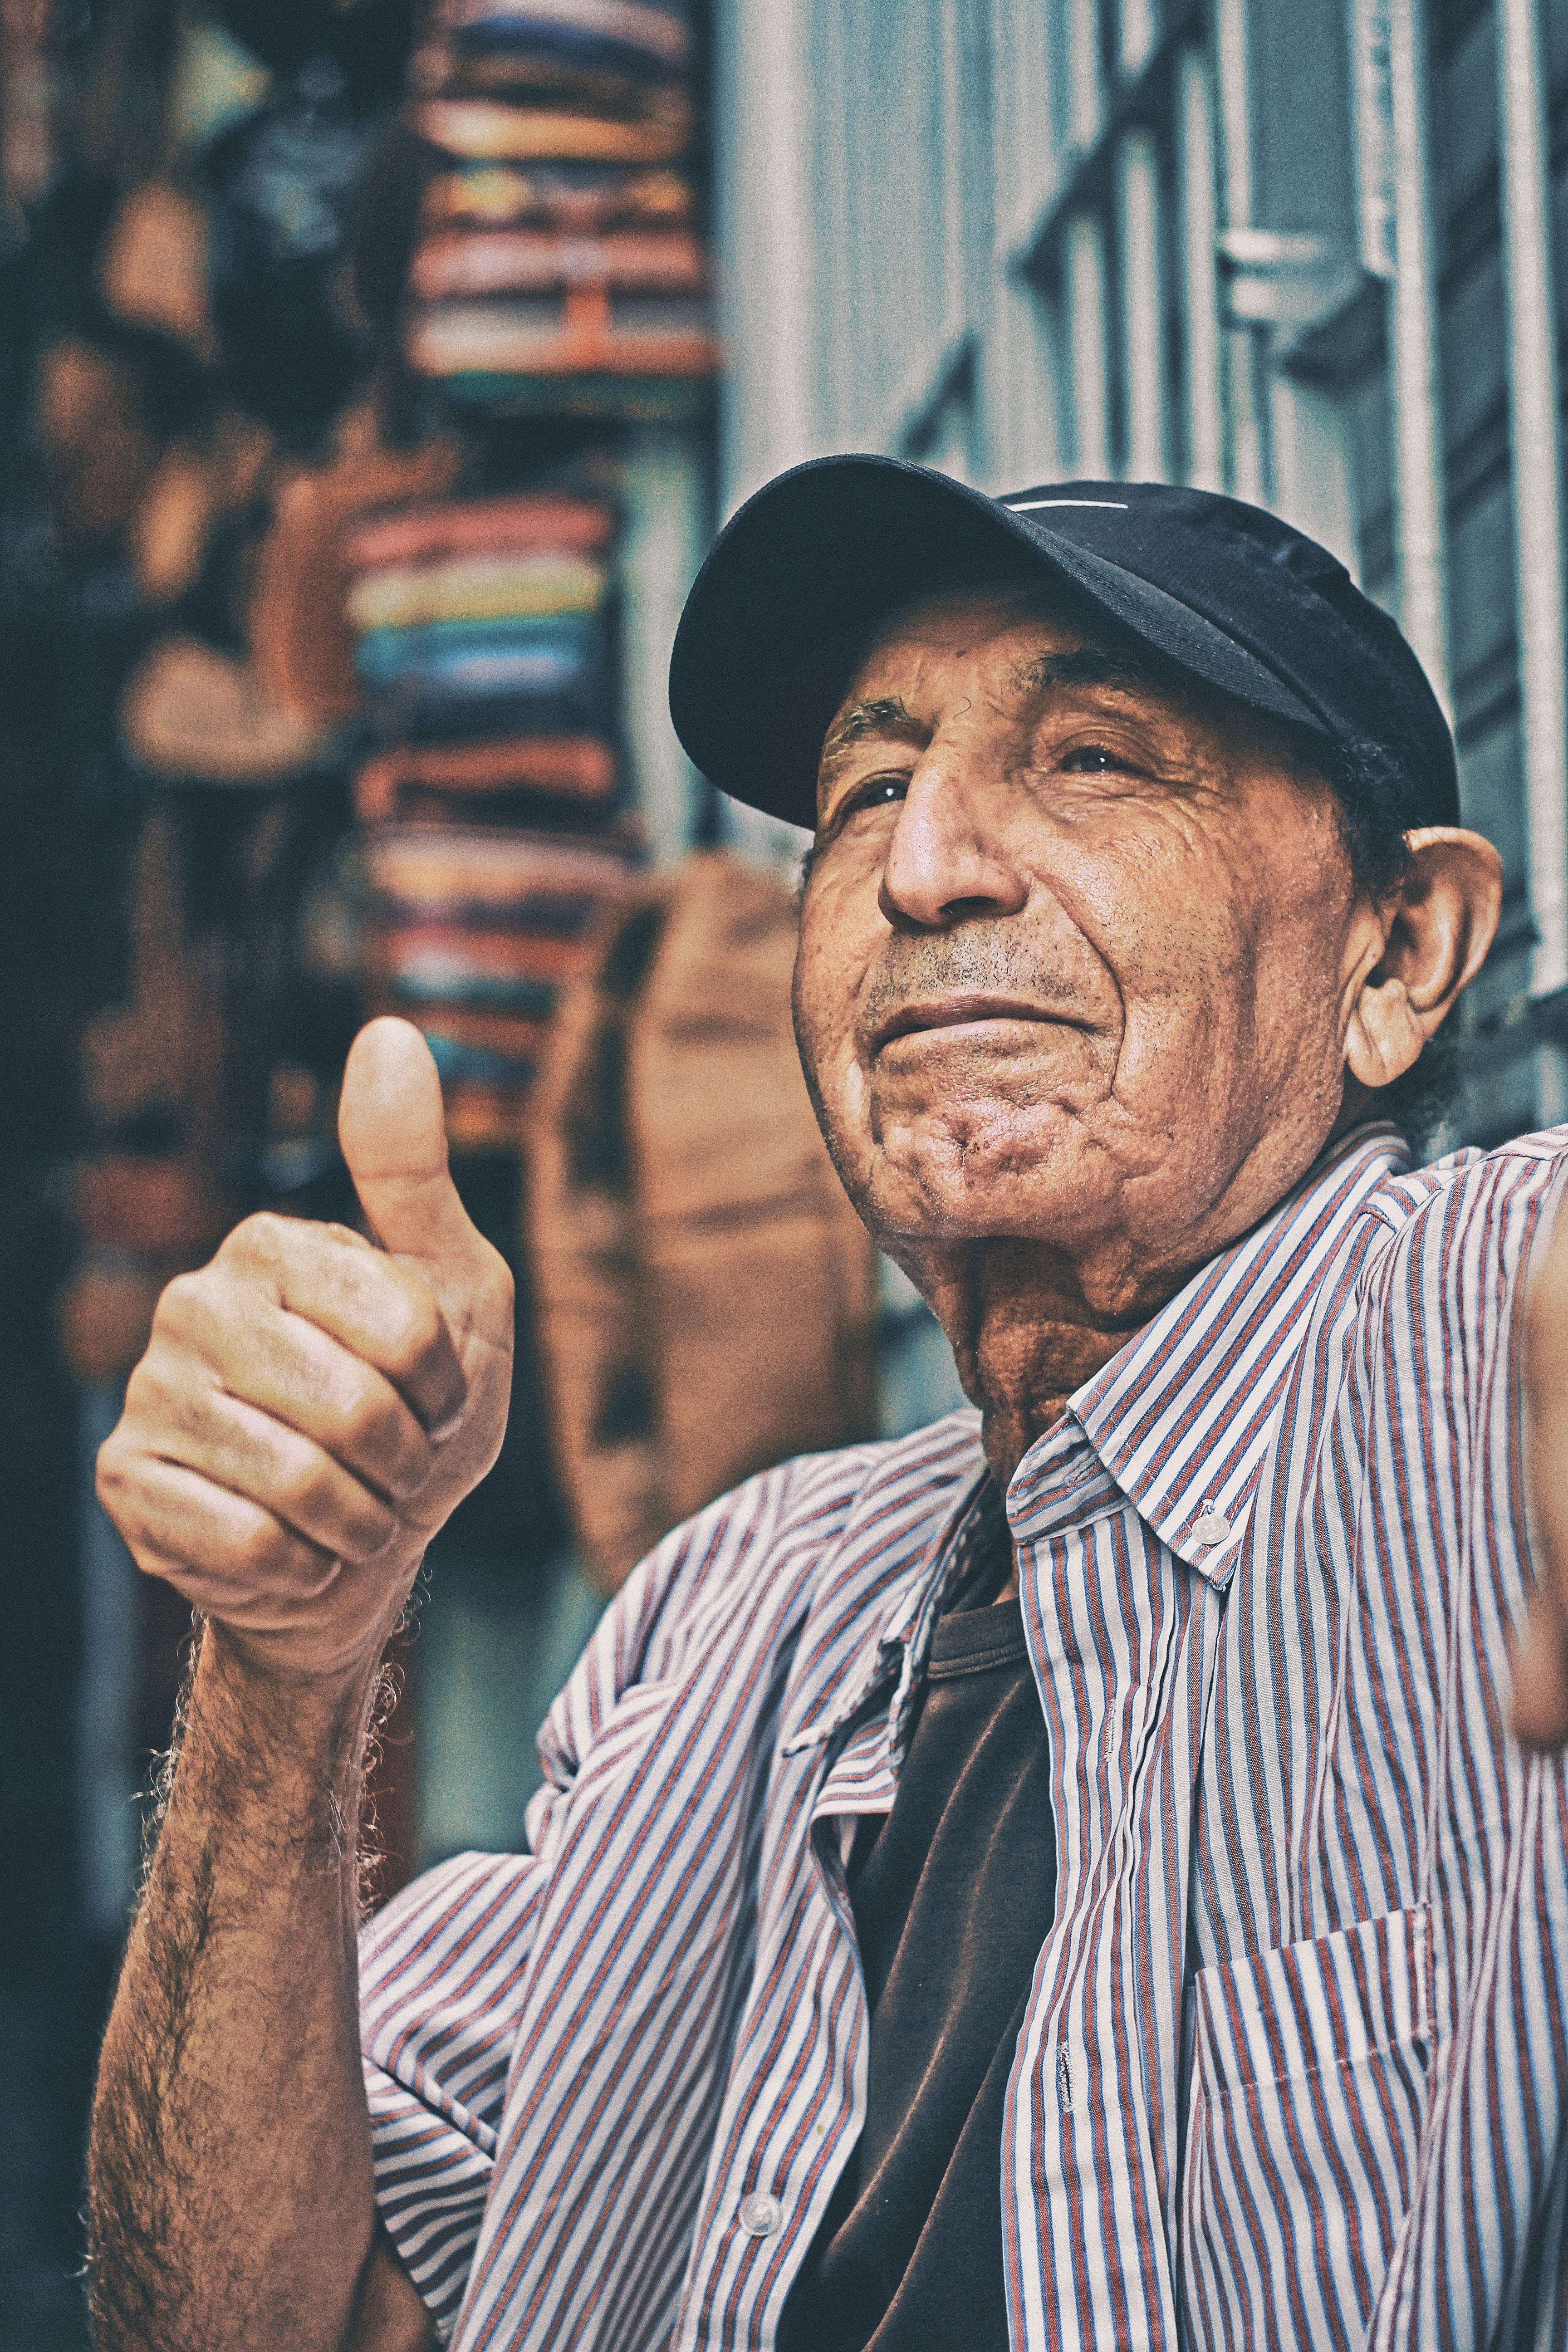 An old man giving a thumbs up. Source: Unsplash